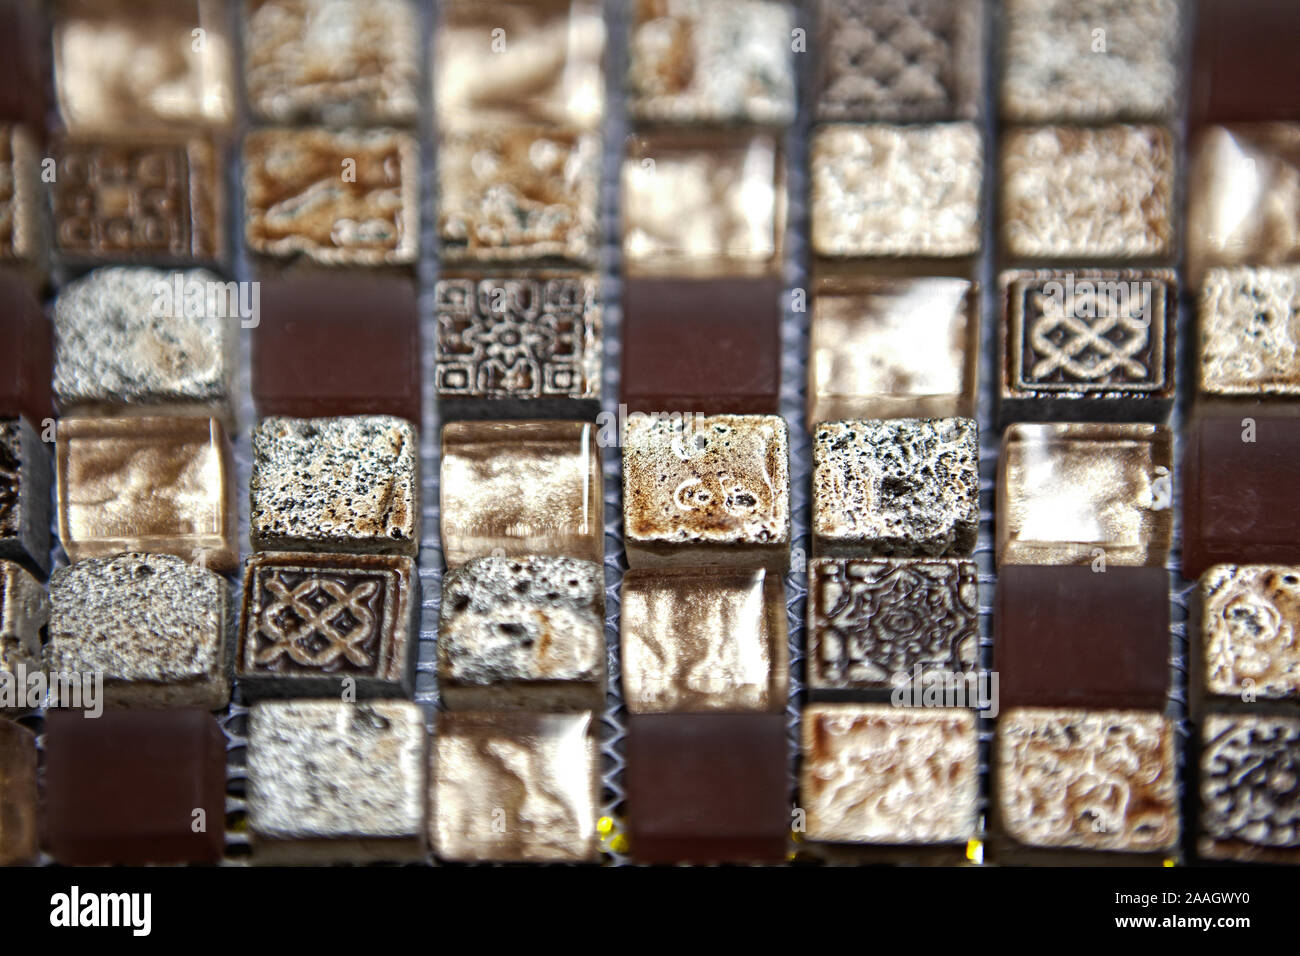 Texture Mosaic Tiles Texture Mosaic Bathroom To The Kitchen Floor And Walls Are Used To Repair The Premises Structure Design Decor Stock Photo Alamy